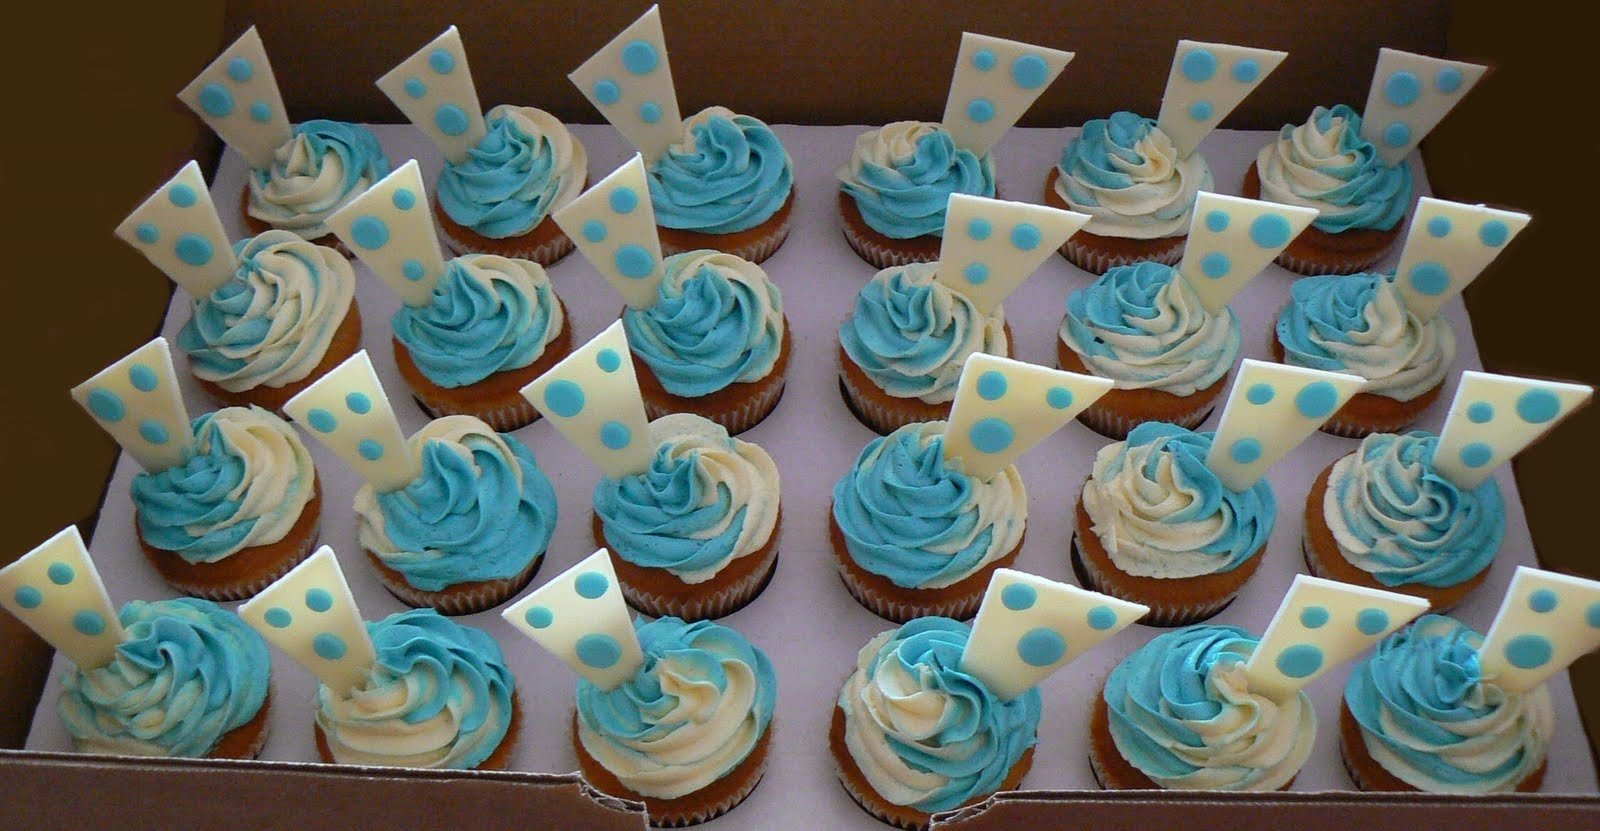 10 Famous Boy Baby Shower Cakes Ideas ideas for baby shower cakes or cupcakes omega center ideas 2020